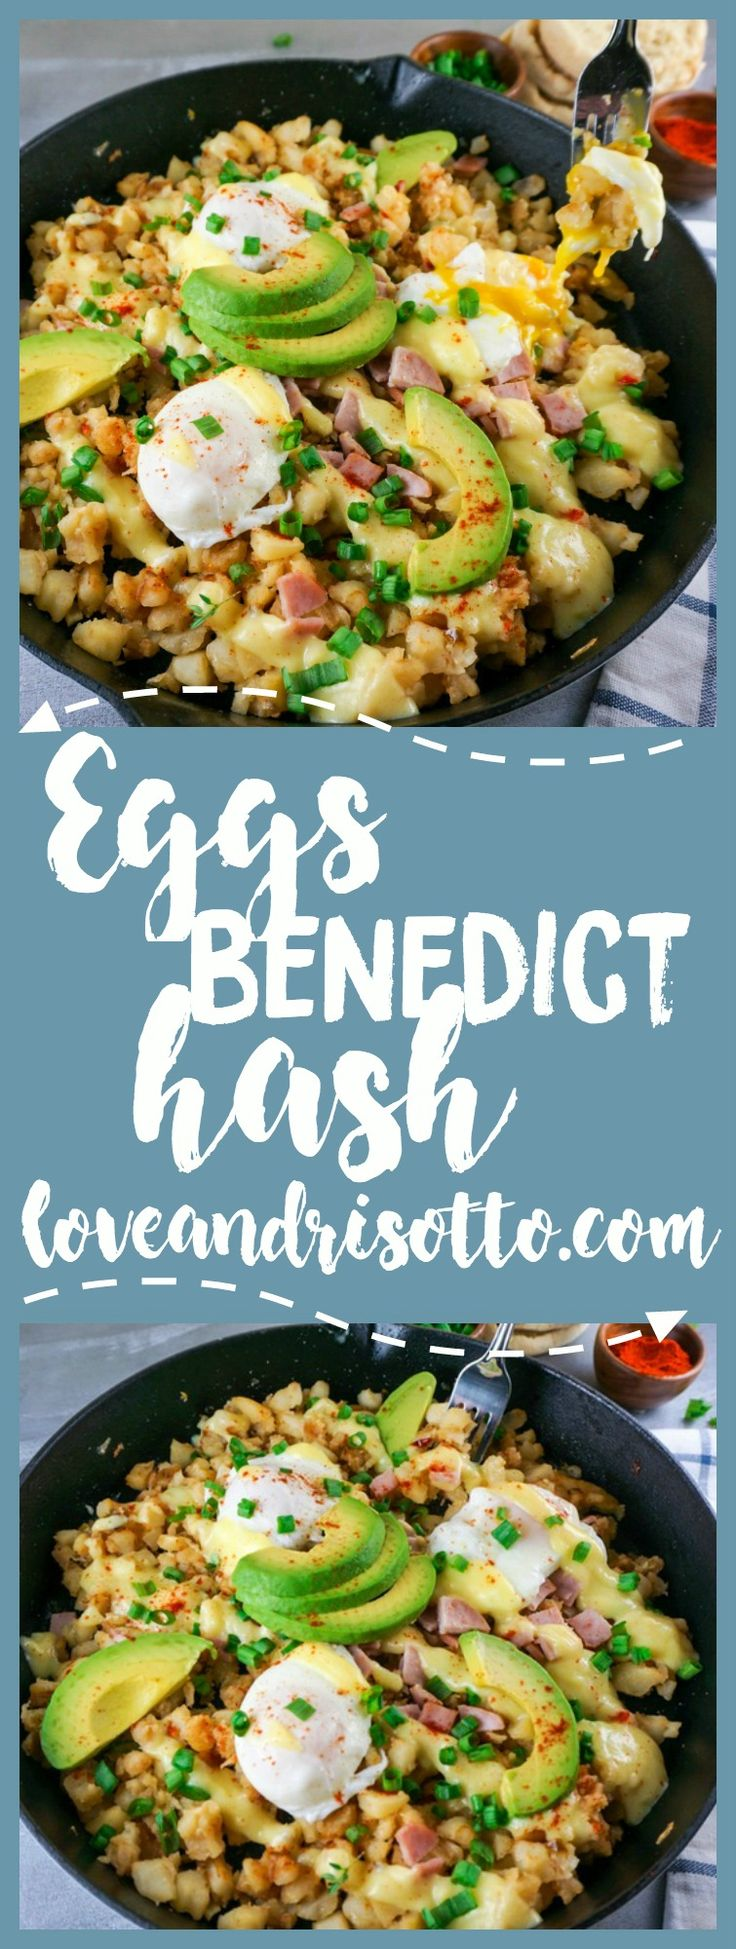 SO delicious and packed full of flavor, this hash is an amazing breakfast treat!